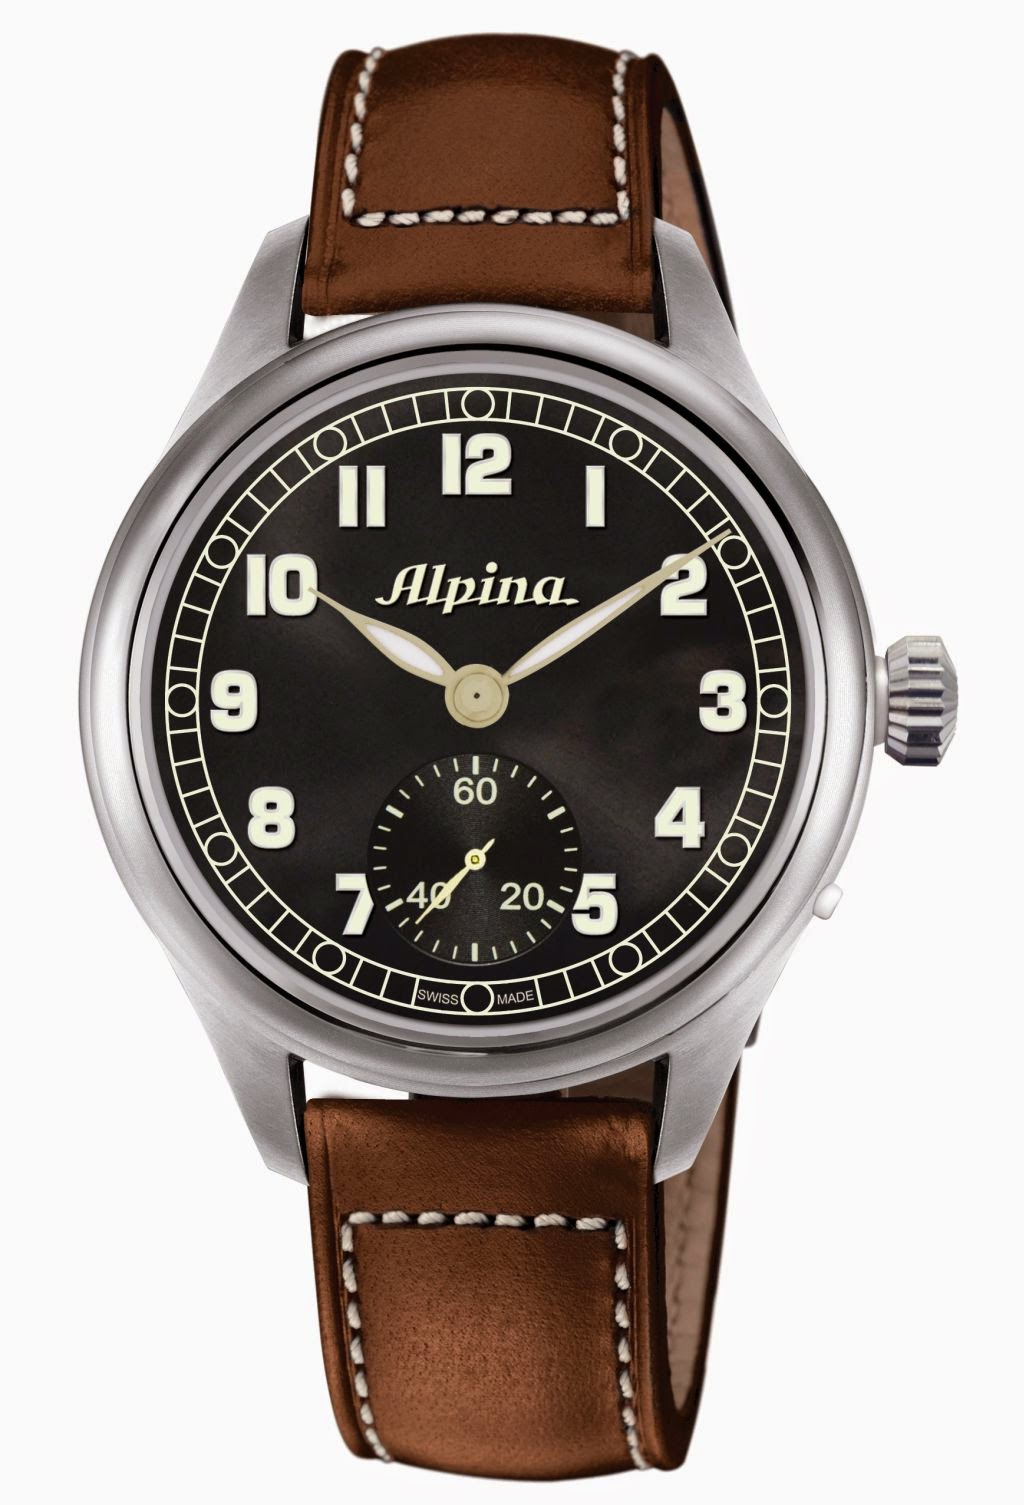 Alpina Heritage Pilot Limited Edition hand-wound watch